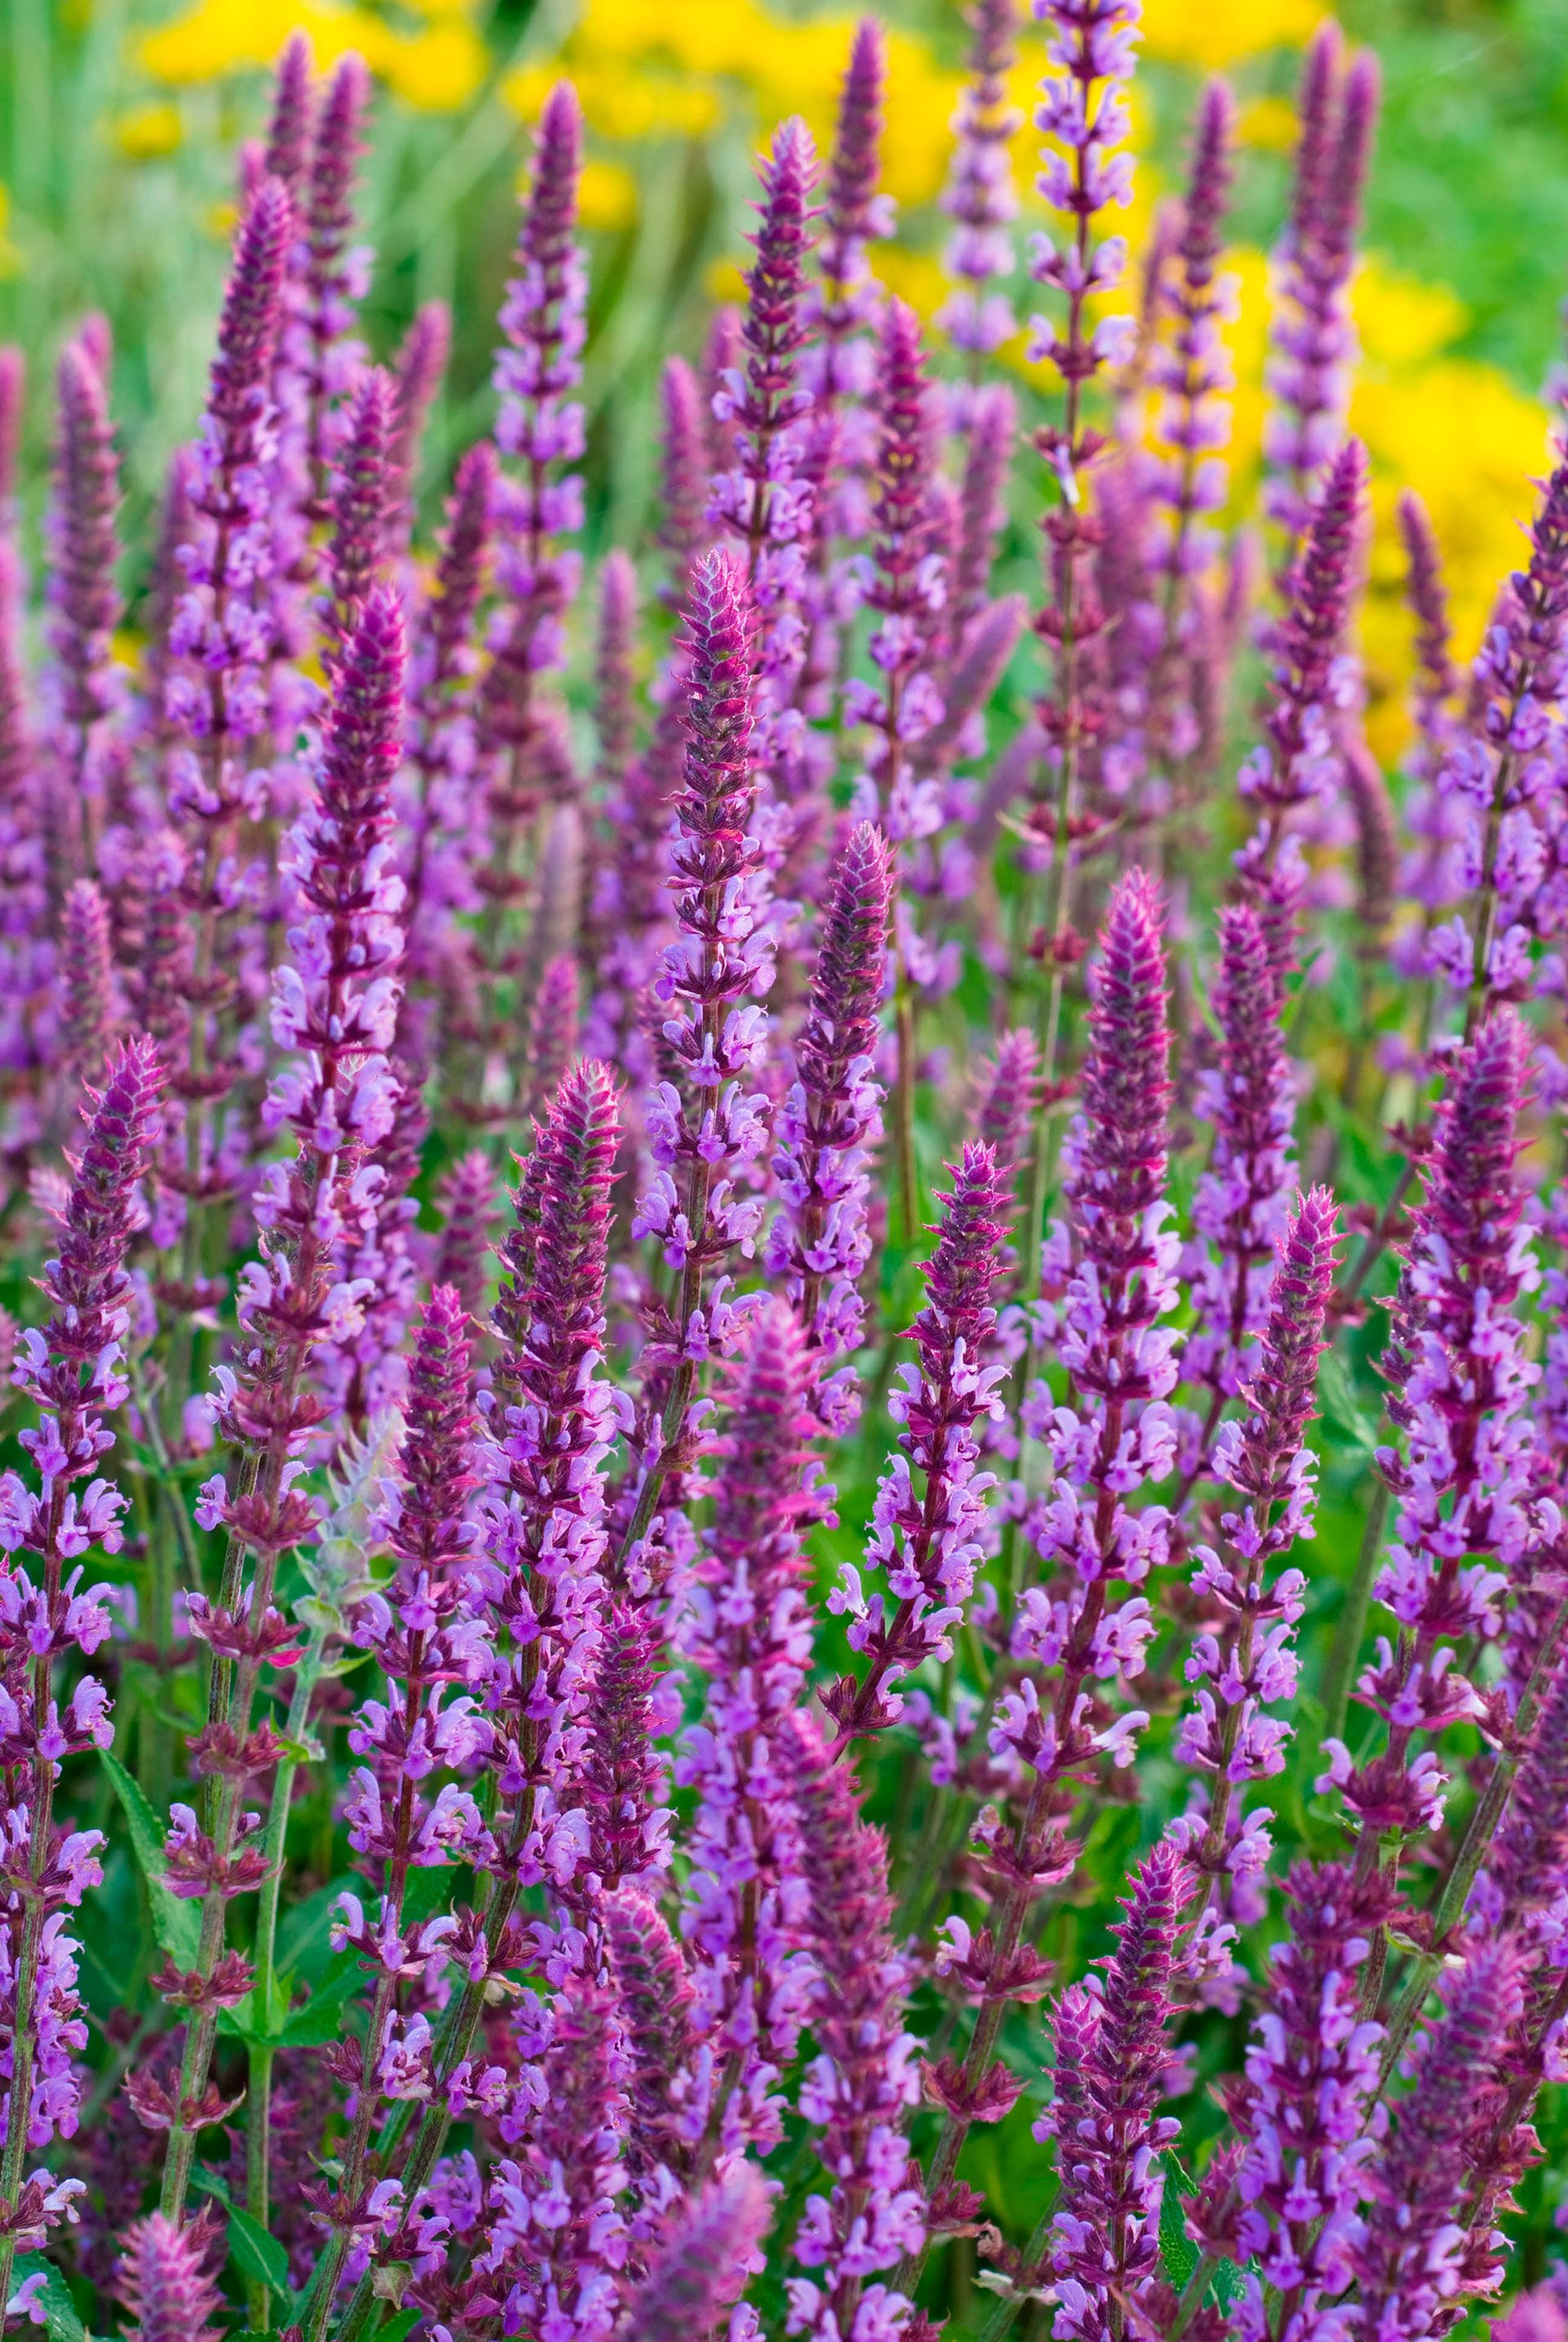 34 Gardening Tips That Will Improve Your Outdoor Space Perennials